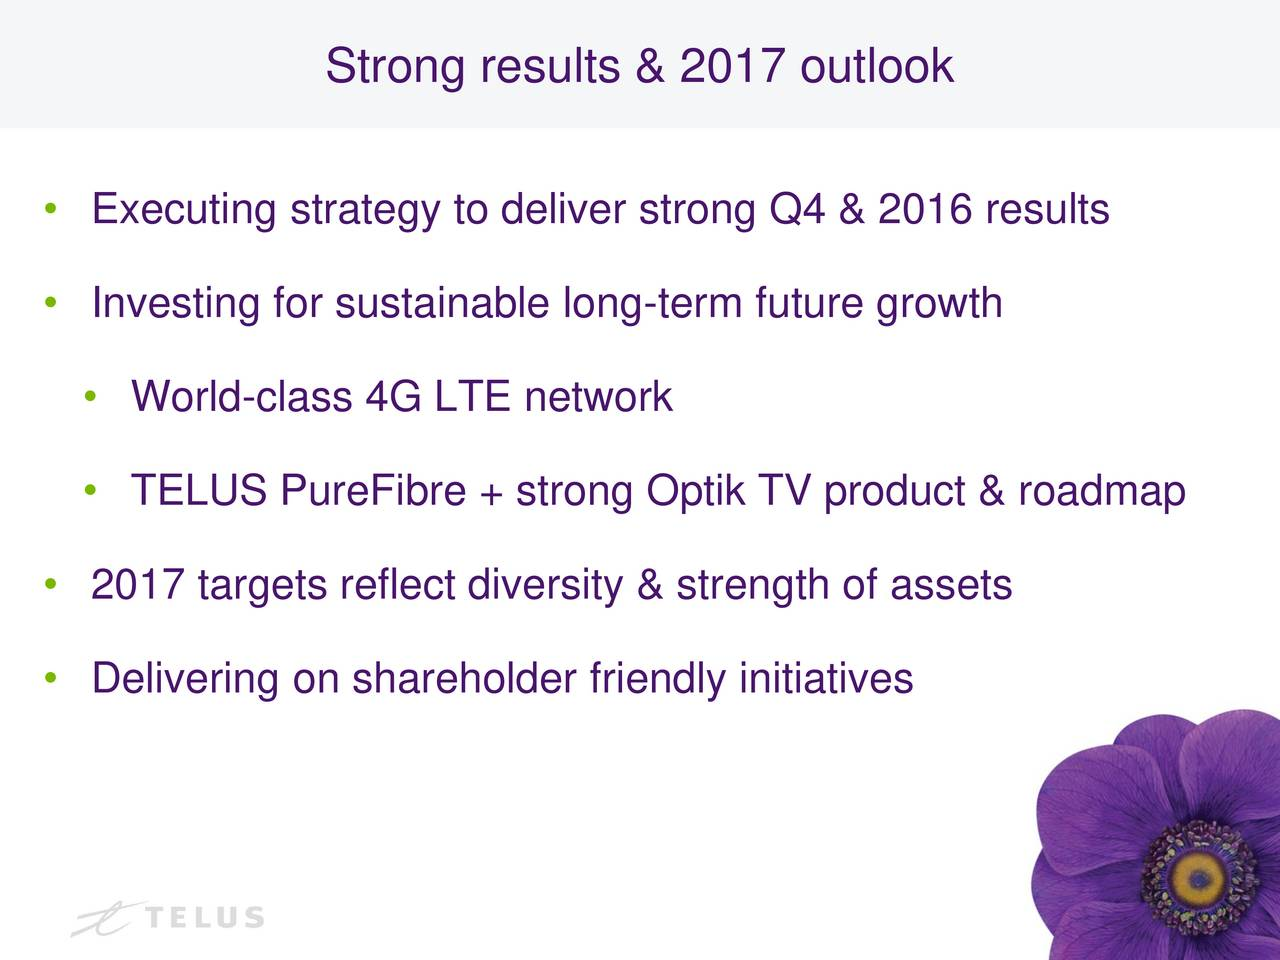 Executing strategy to deliver strong Q4 & 2016 results Investing for sustainable long-term future growth World-class 4G LTE network TELUS PureFibre + strong Optik TV product & roadmap 2017 targets reflect diversity & strength of assets Delivering on shareholder friendly initiatives 3